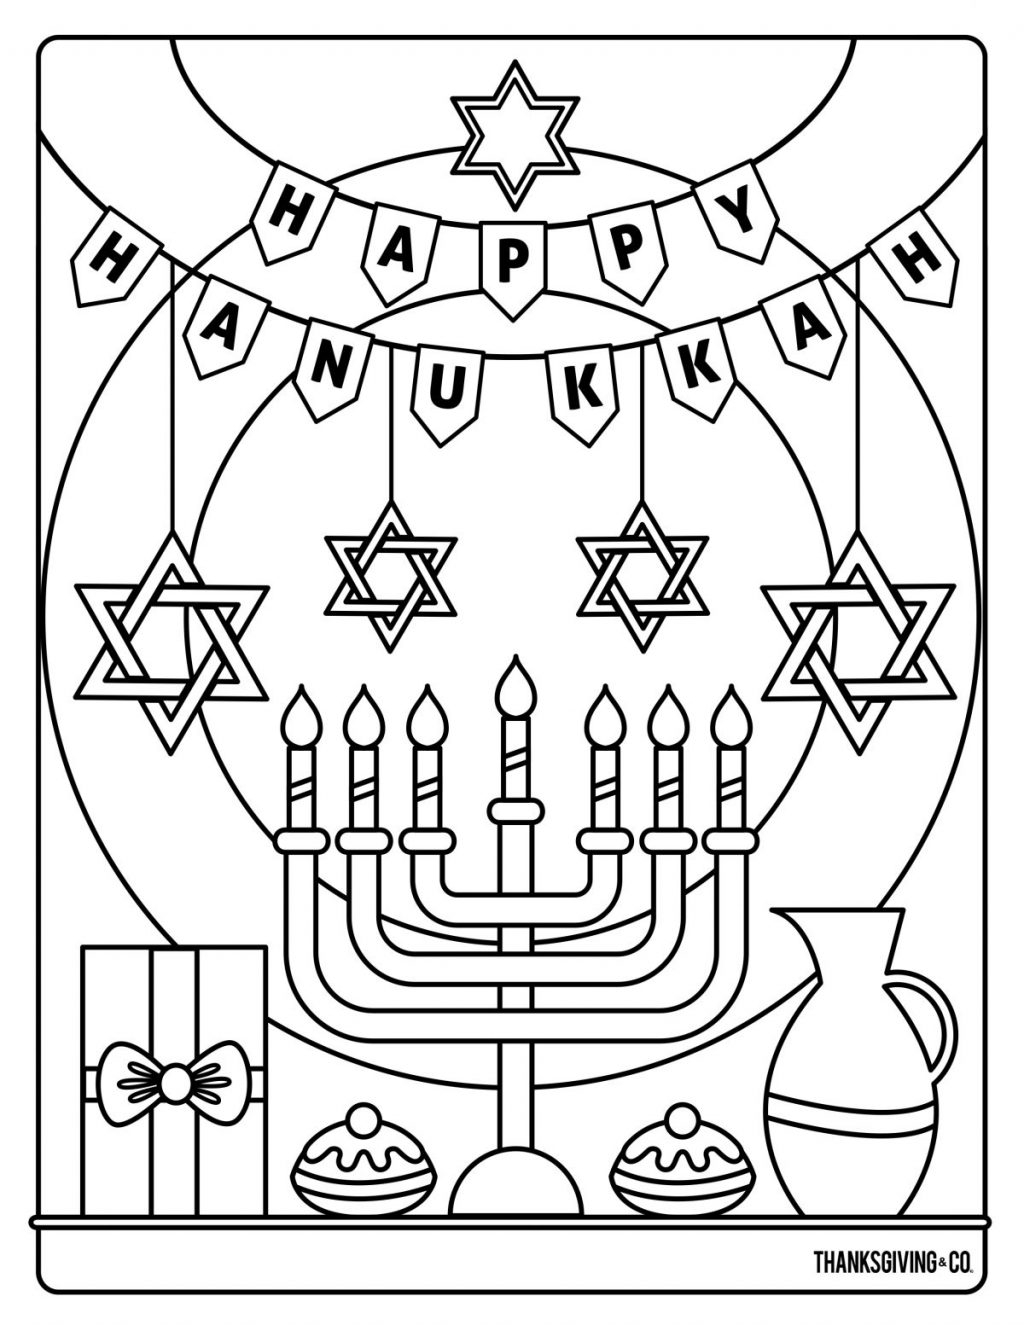 25+ Inspired Image of Hanukkah Coloring Pages